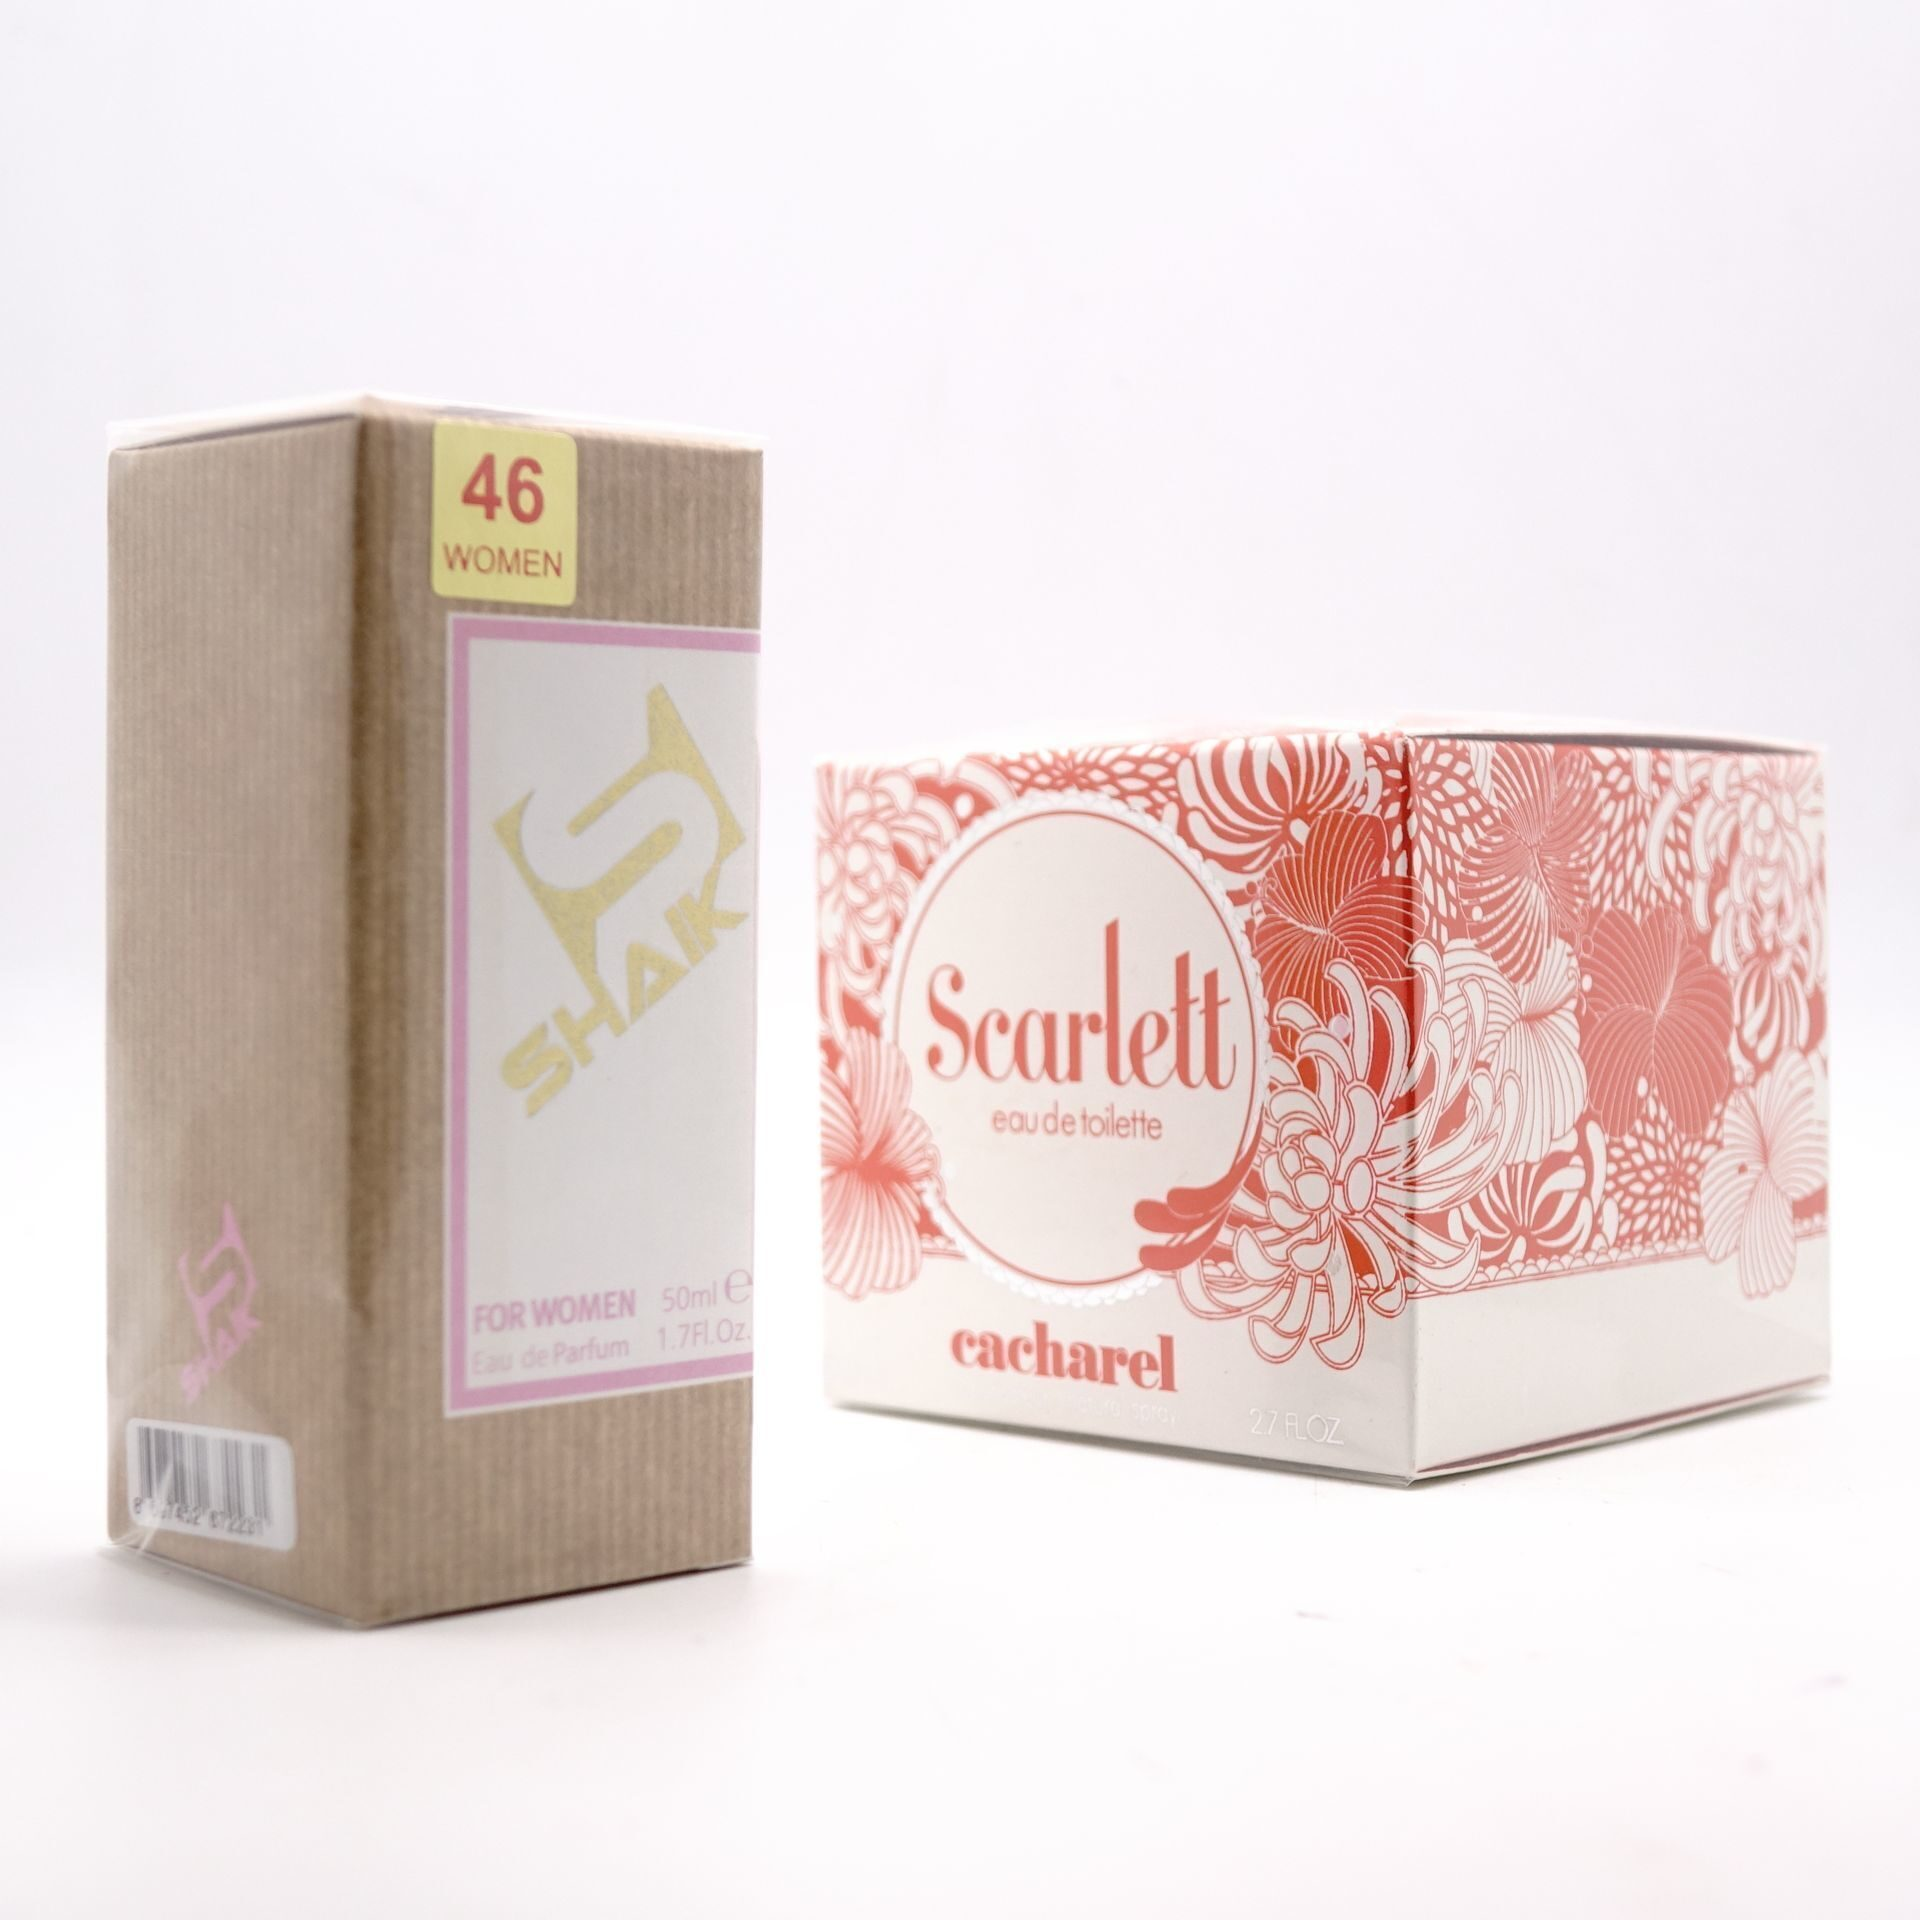 SHAIK W 46 (CACHARELSCARLETT FOR WOMEN) 50ml